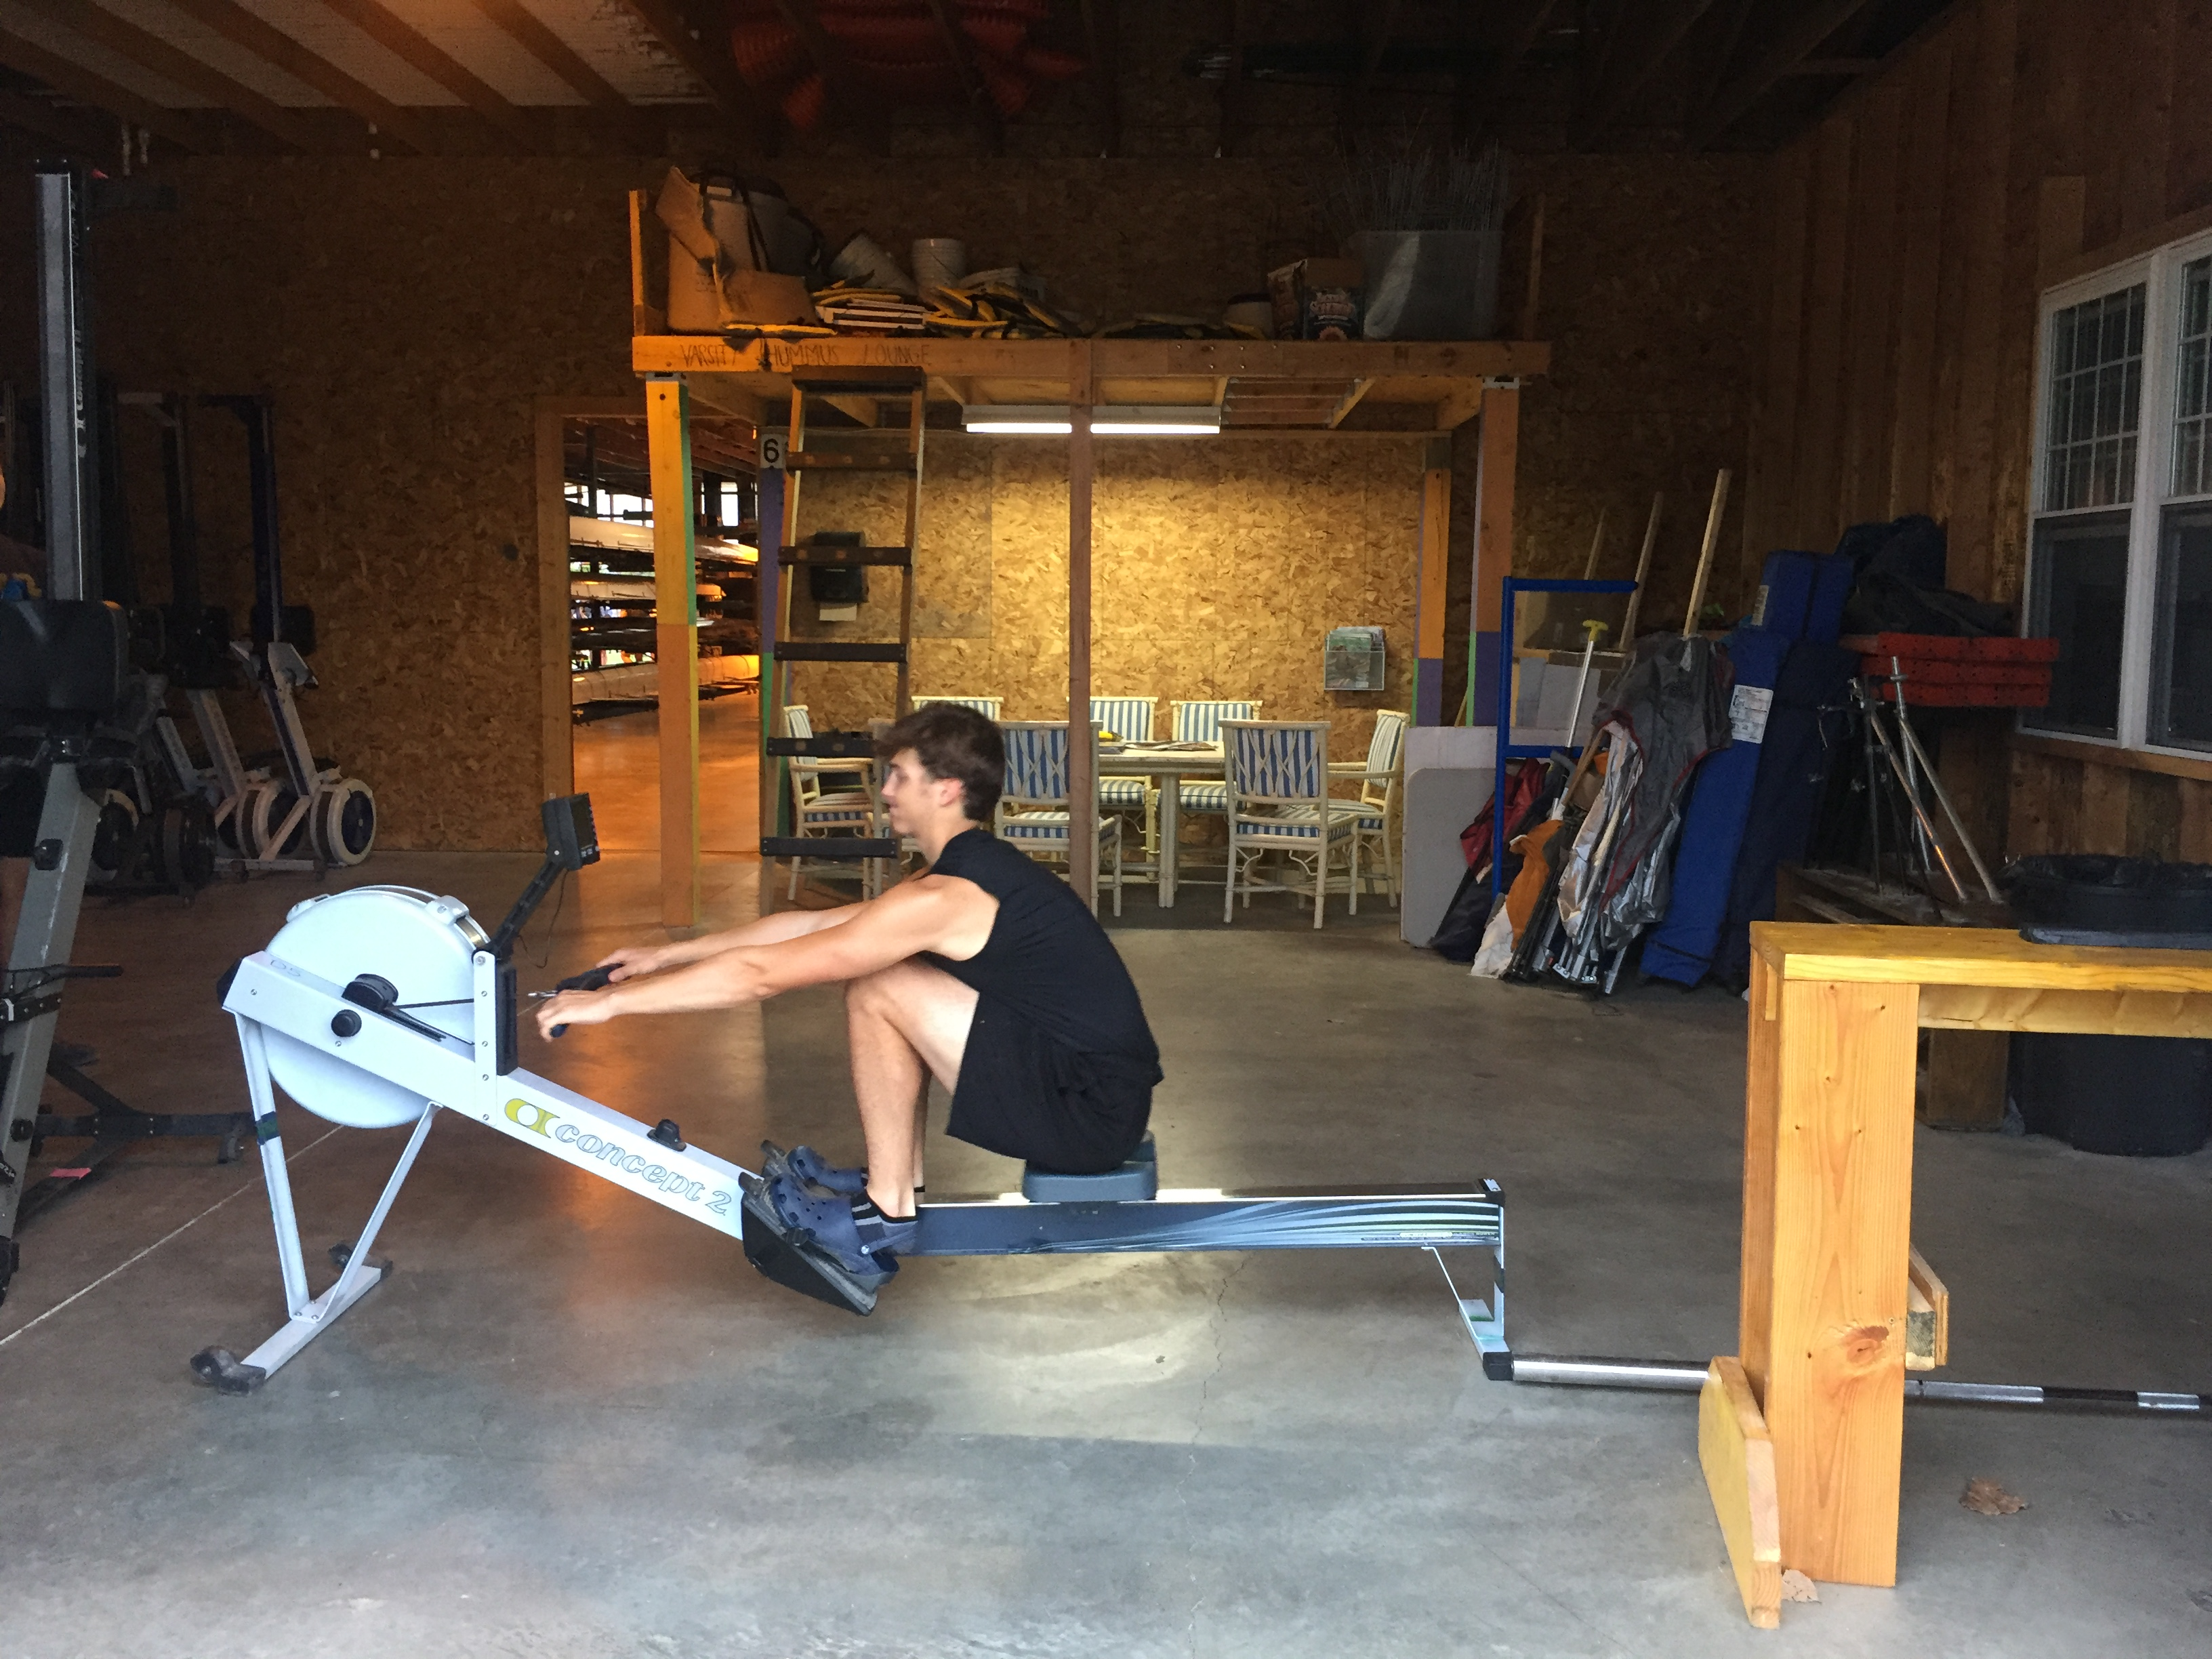 PHS's Rowing Team's Erg-a-Thon is Saturday!